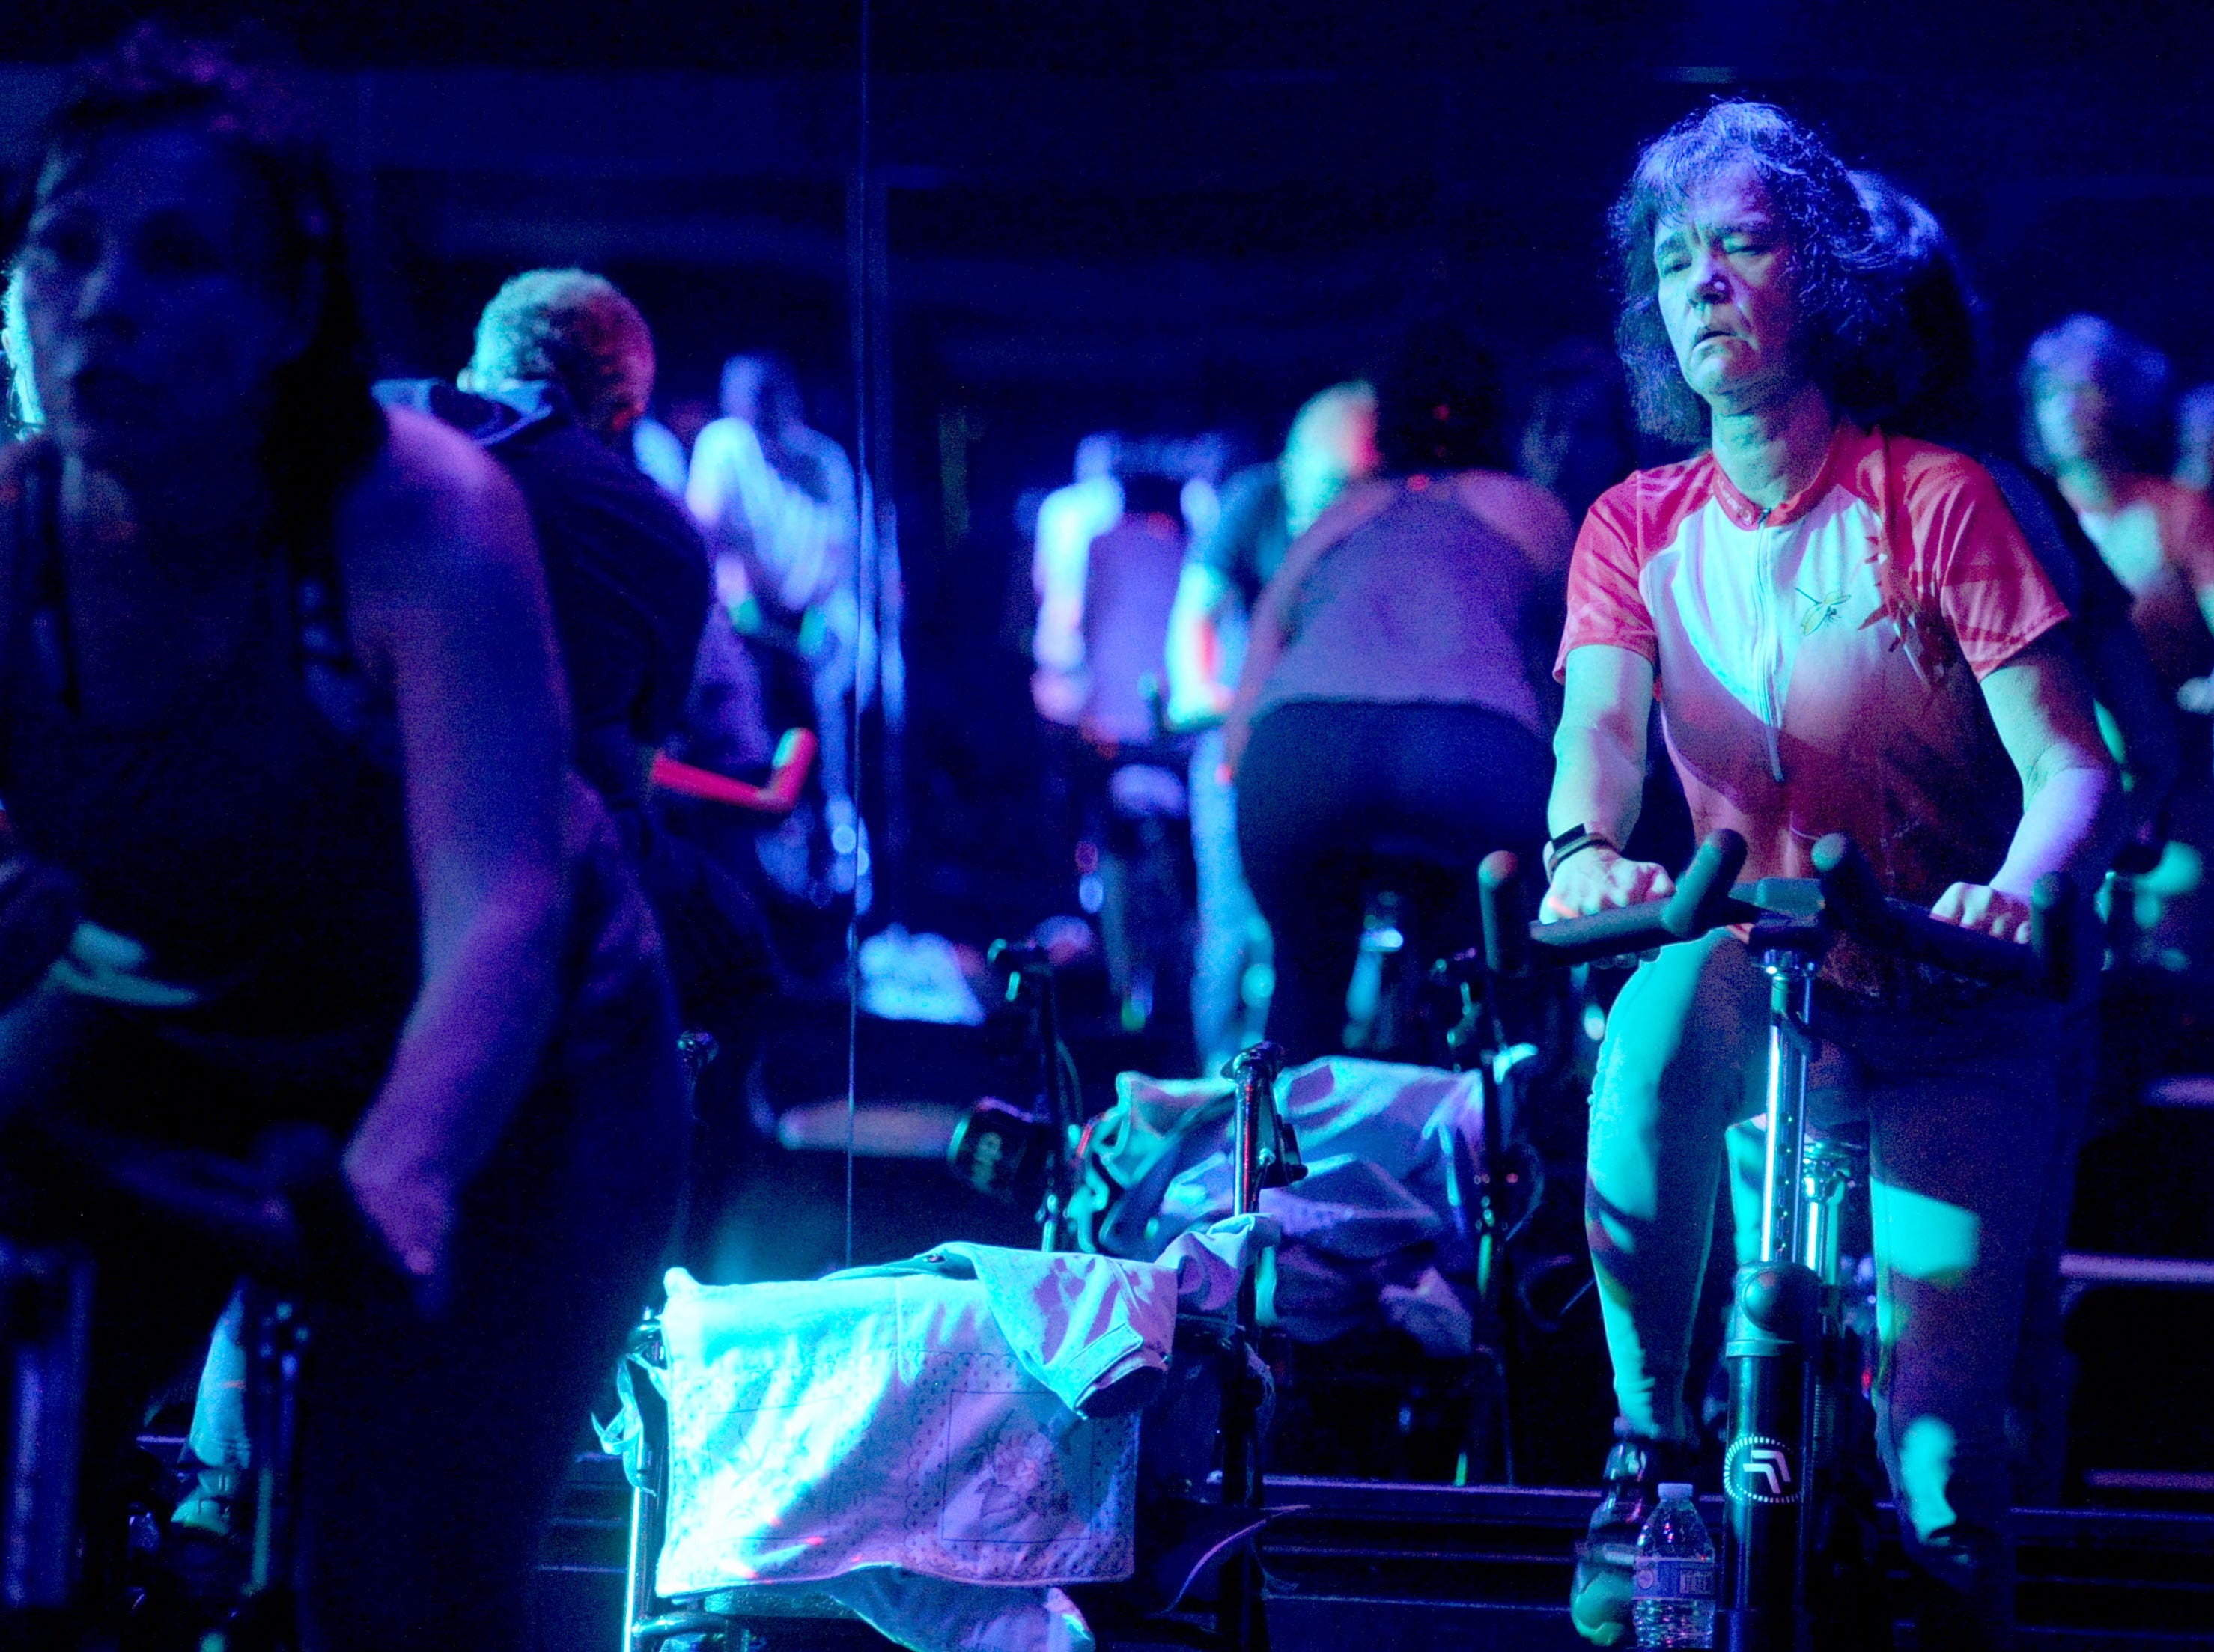 Debbie Jew, right, takes a 30-minute spin class at Agoura Fitness in Agoura Hills. The Moorpark resident was diagnosed 13 years ago with Parkinson's disease. She uses exercise to try to control the disease's progress.